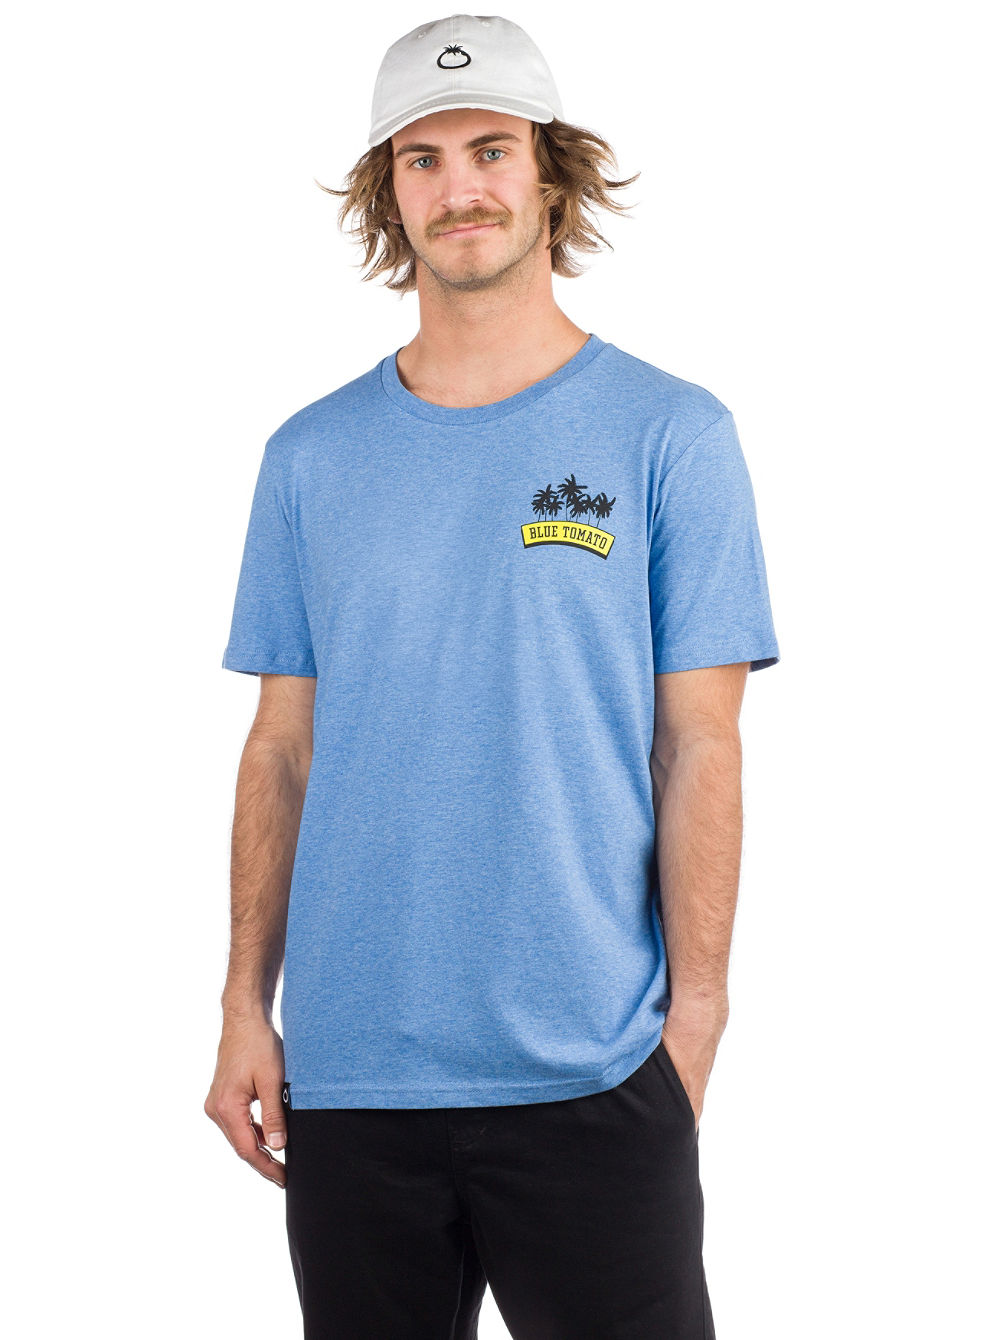 Pointbreak SL T-Shirt